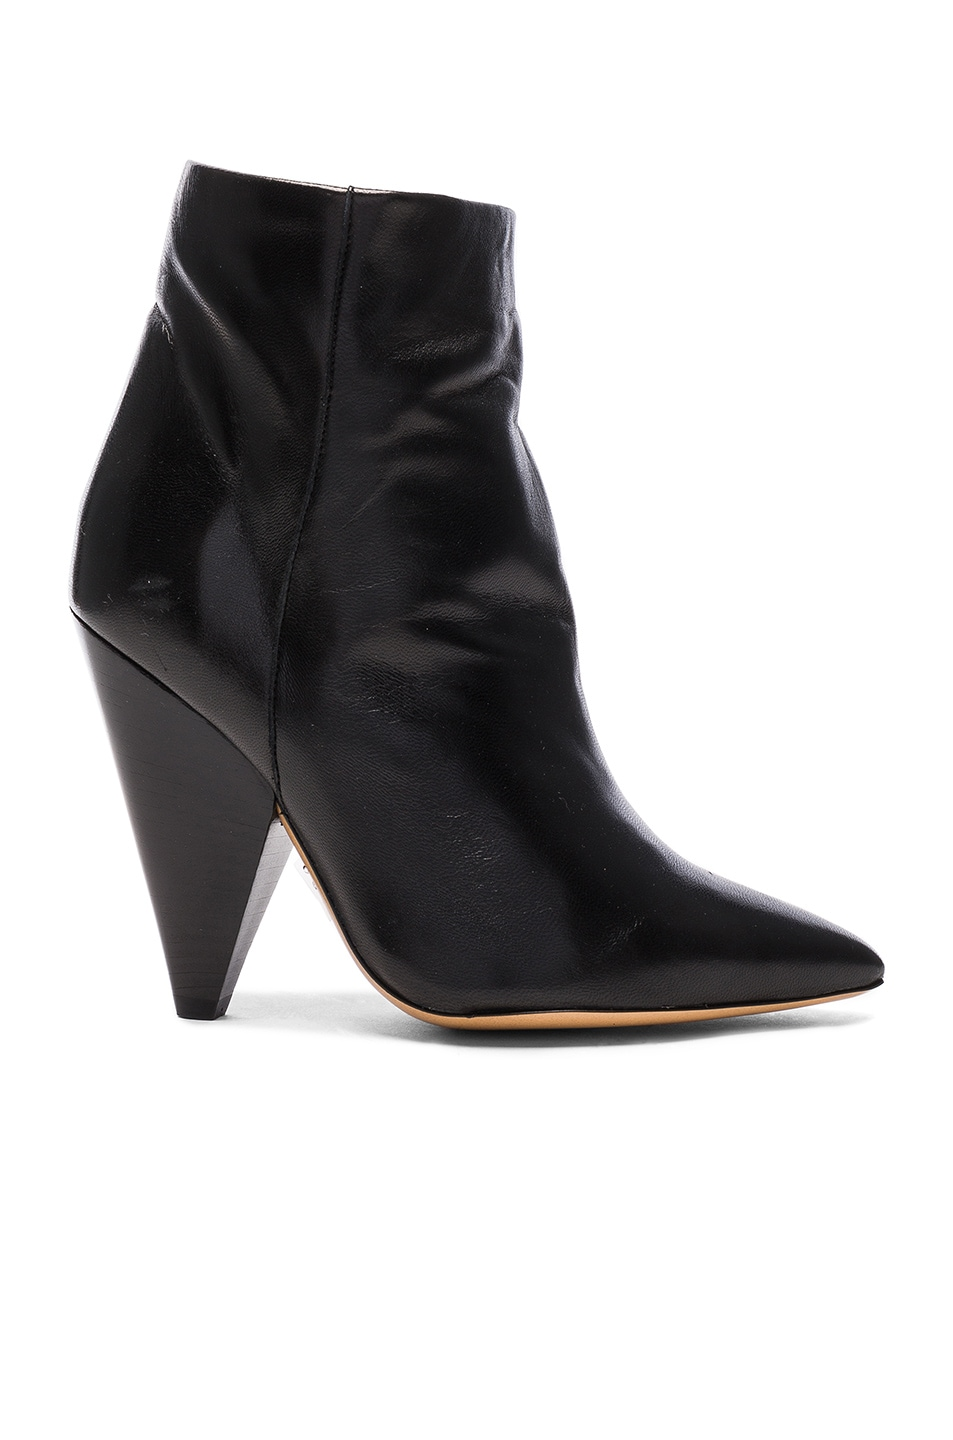 Image 1 of Isabel Marant Leather Leydoni Booties in Black